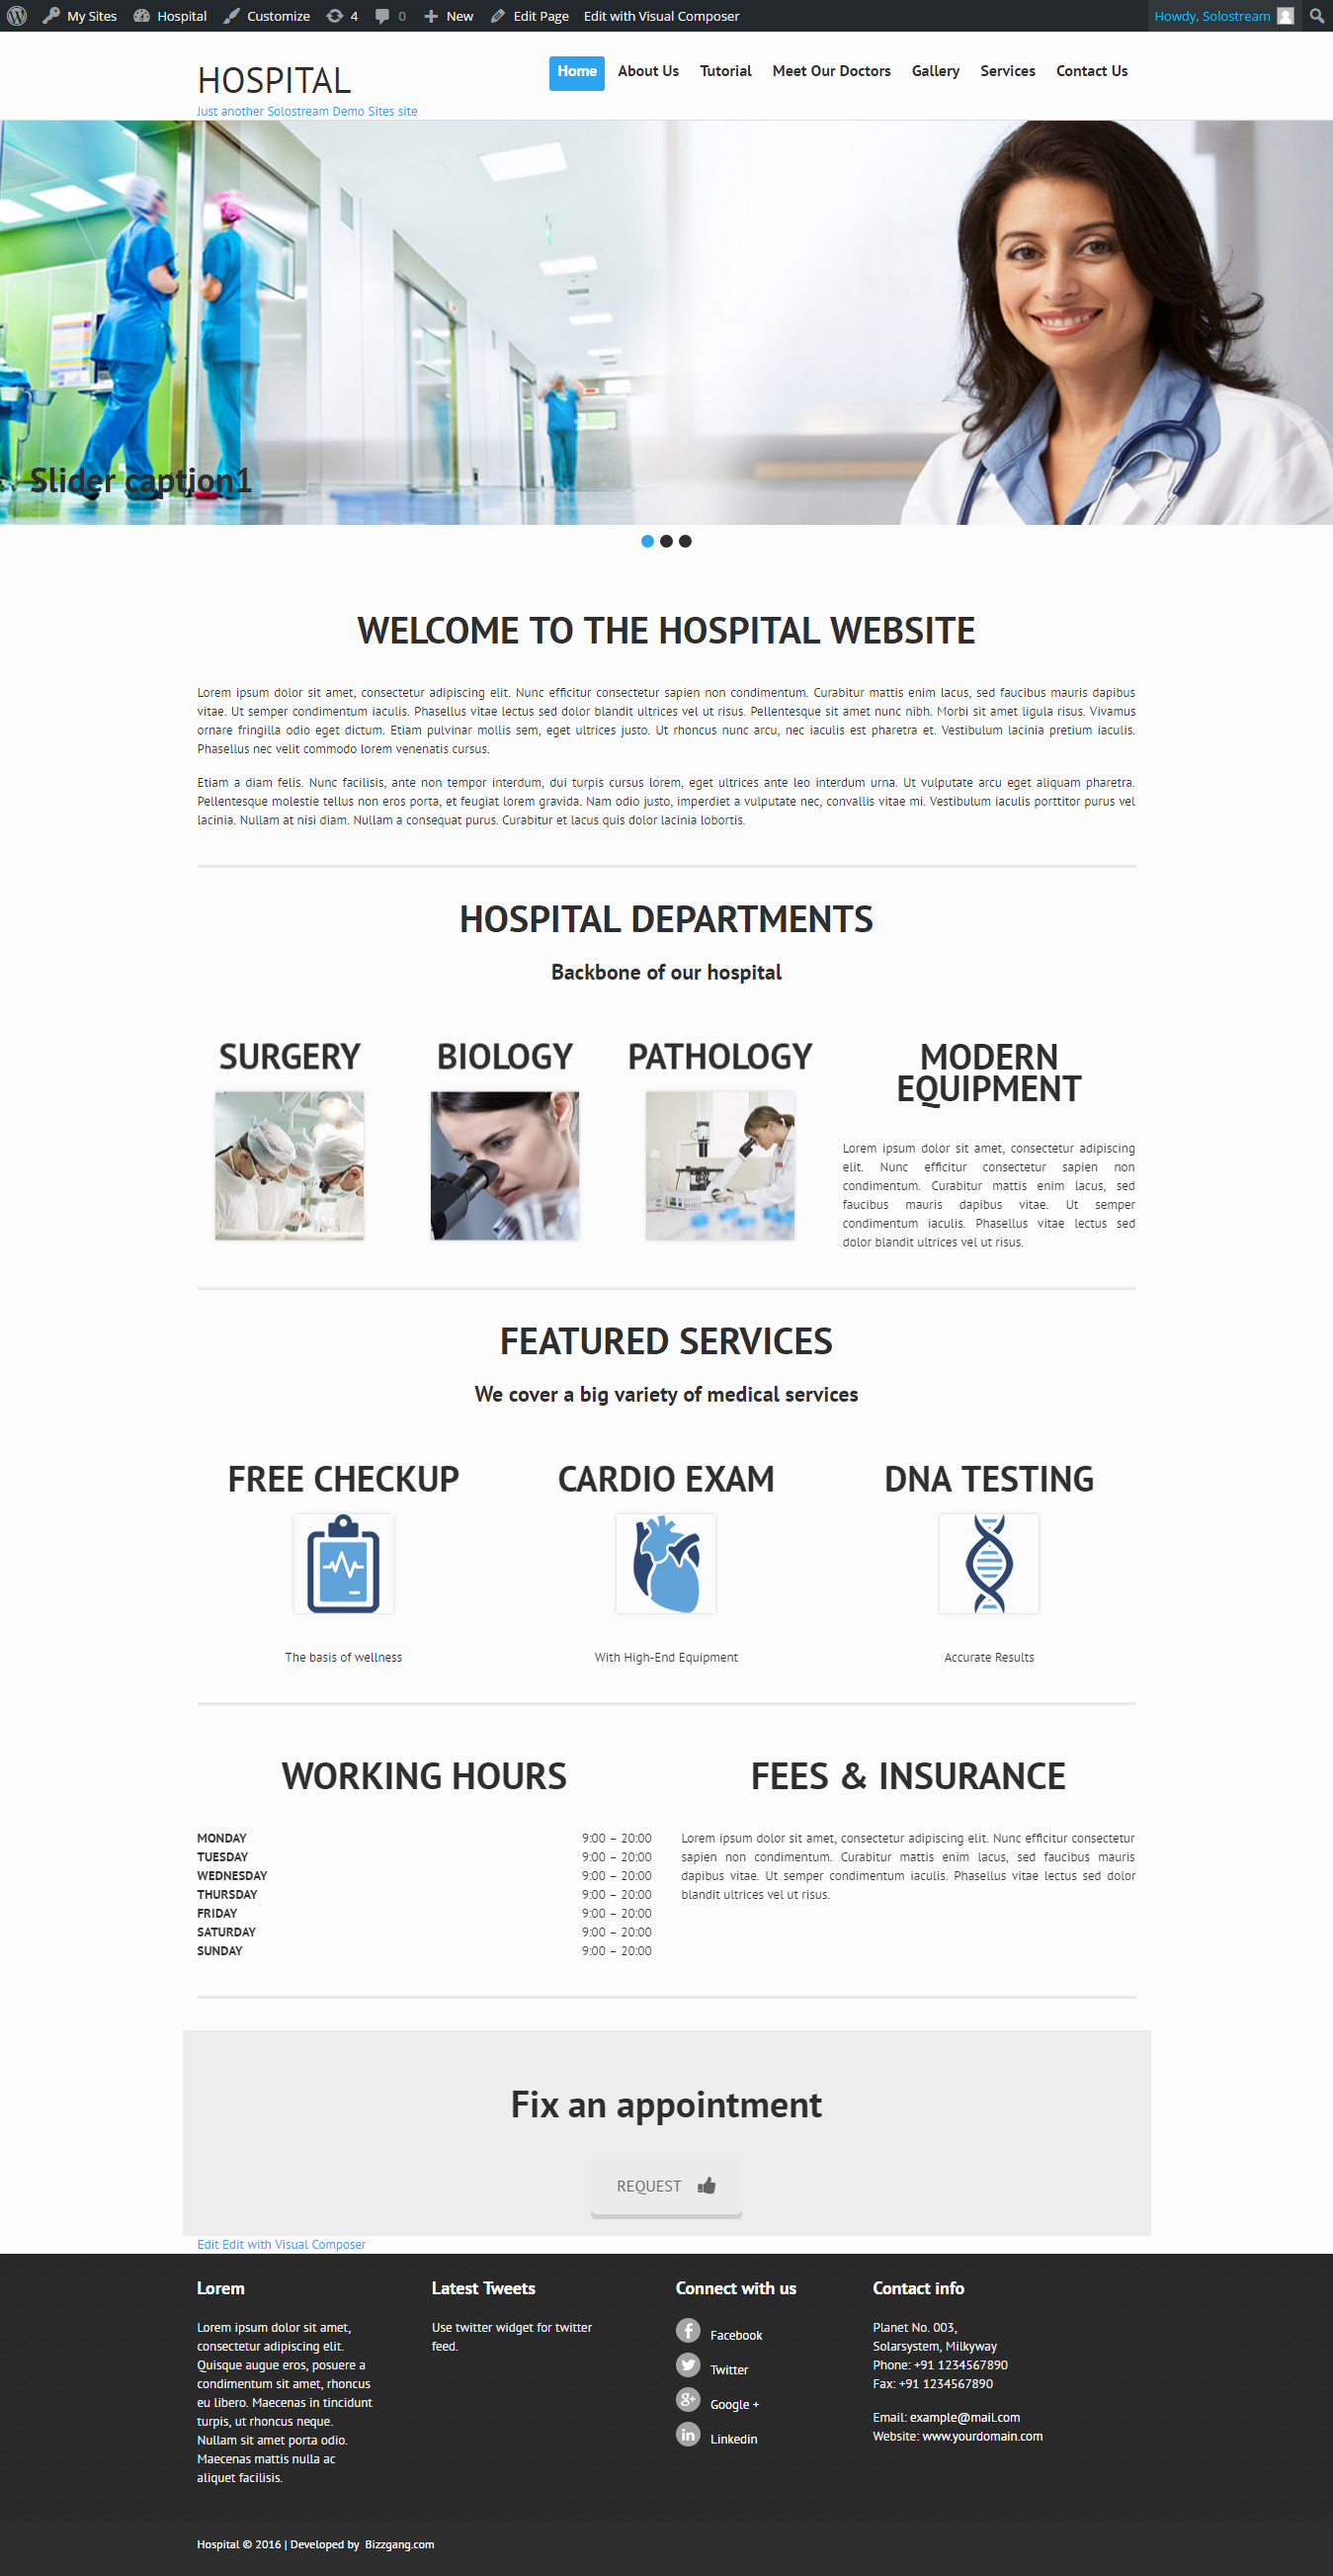 Hospital – Just another Solostream Demo Sites site